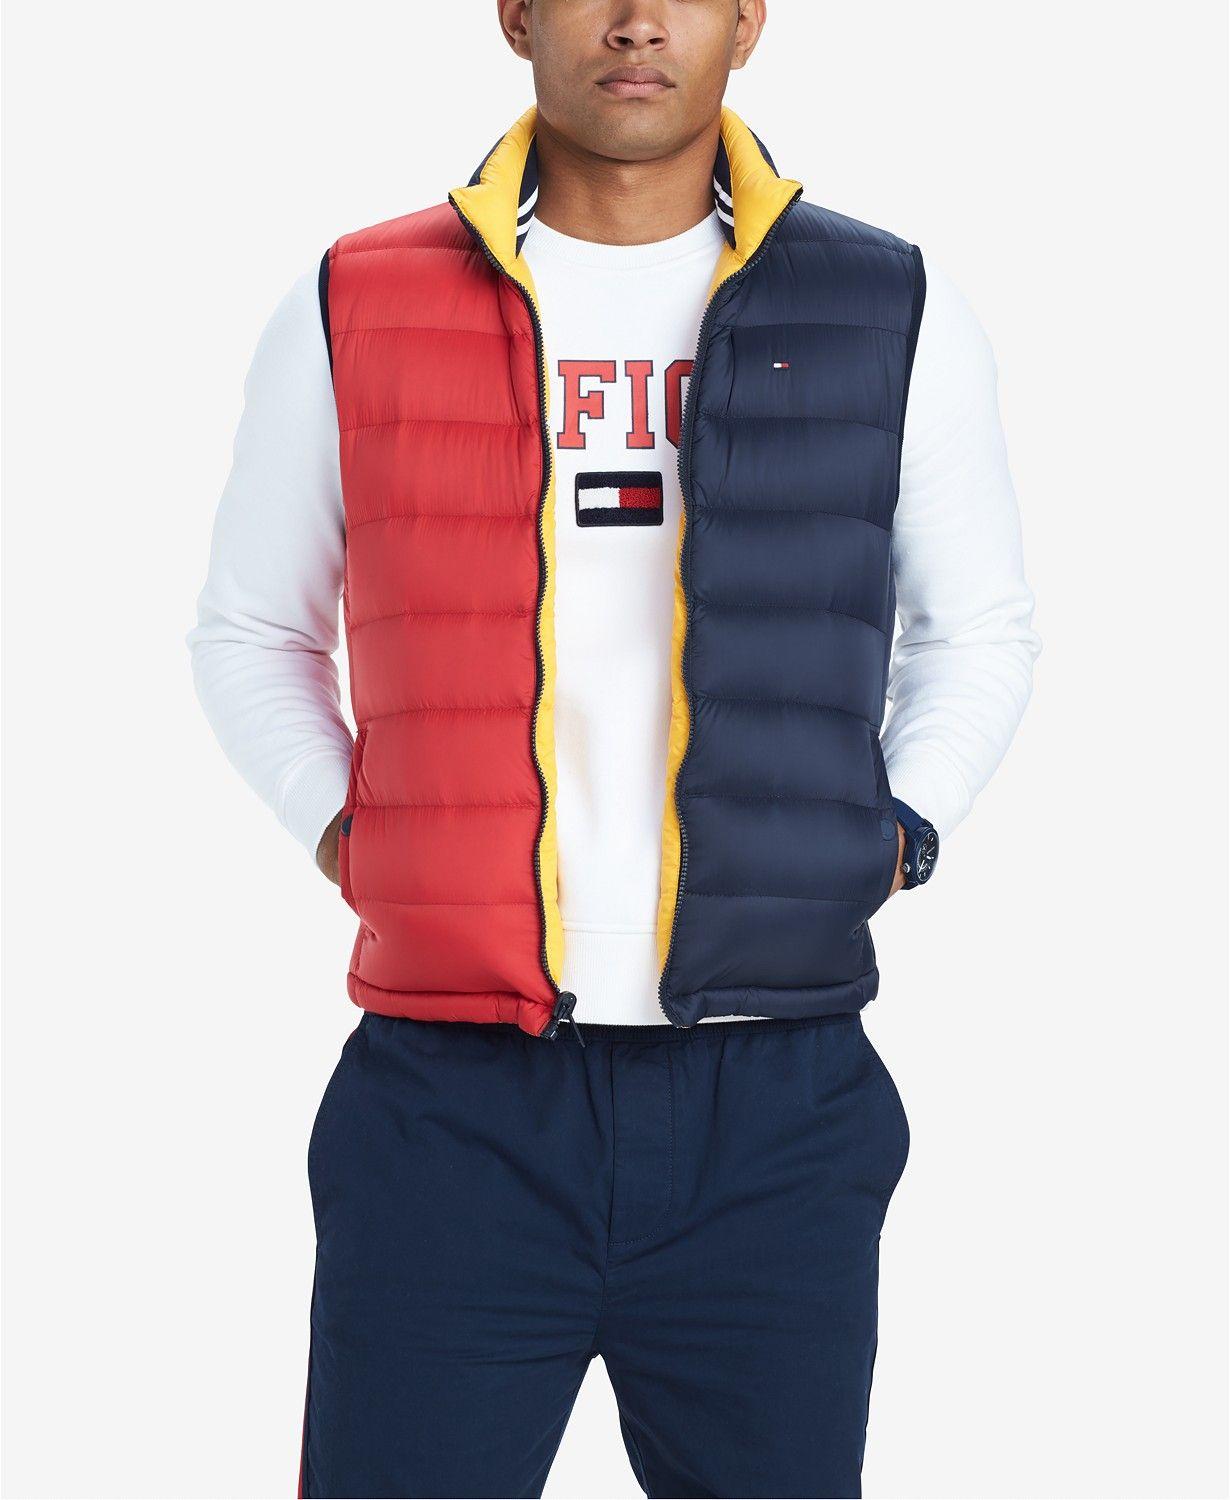 7f5a10fa Magnified main image Puffer Vest Outfit, Vest Outfits, Tommy Hilfiger  Outfit, Work Jackets